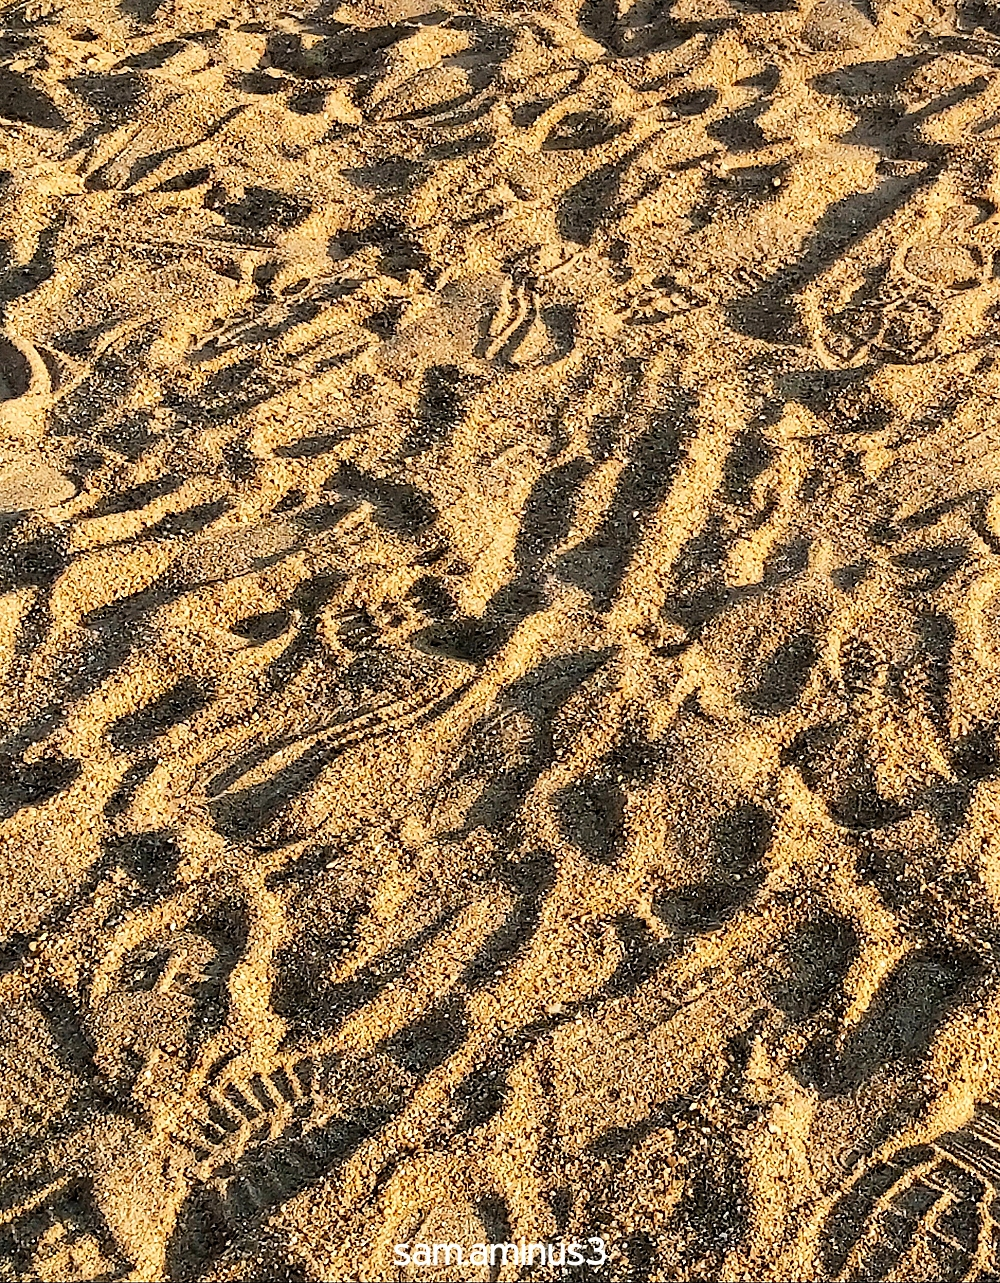 The Foot Prints